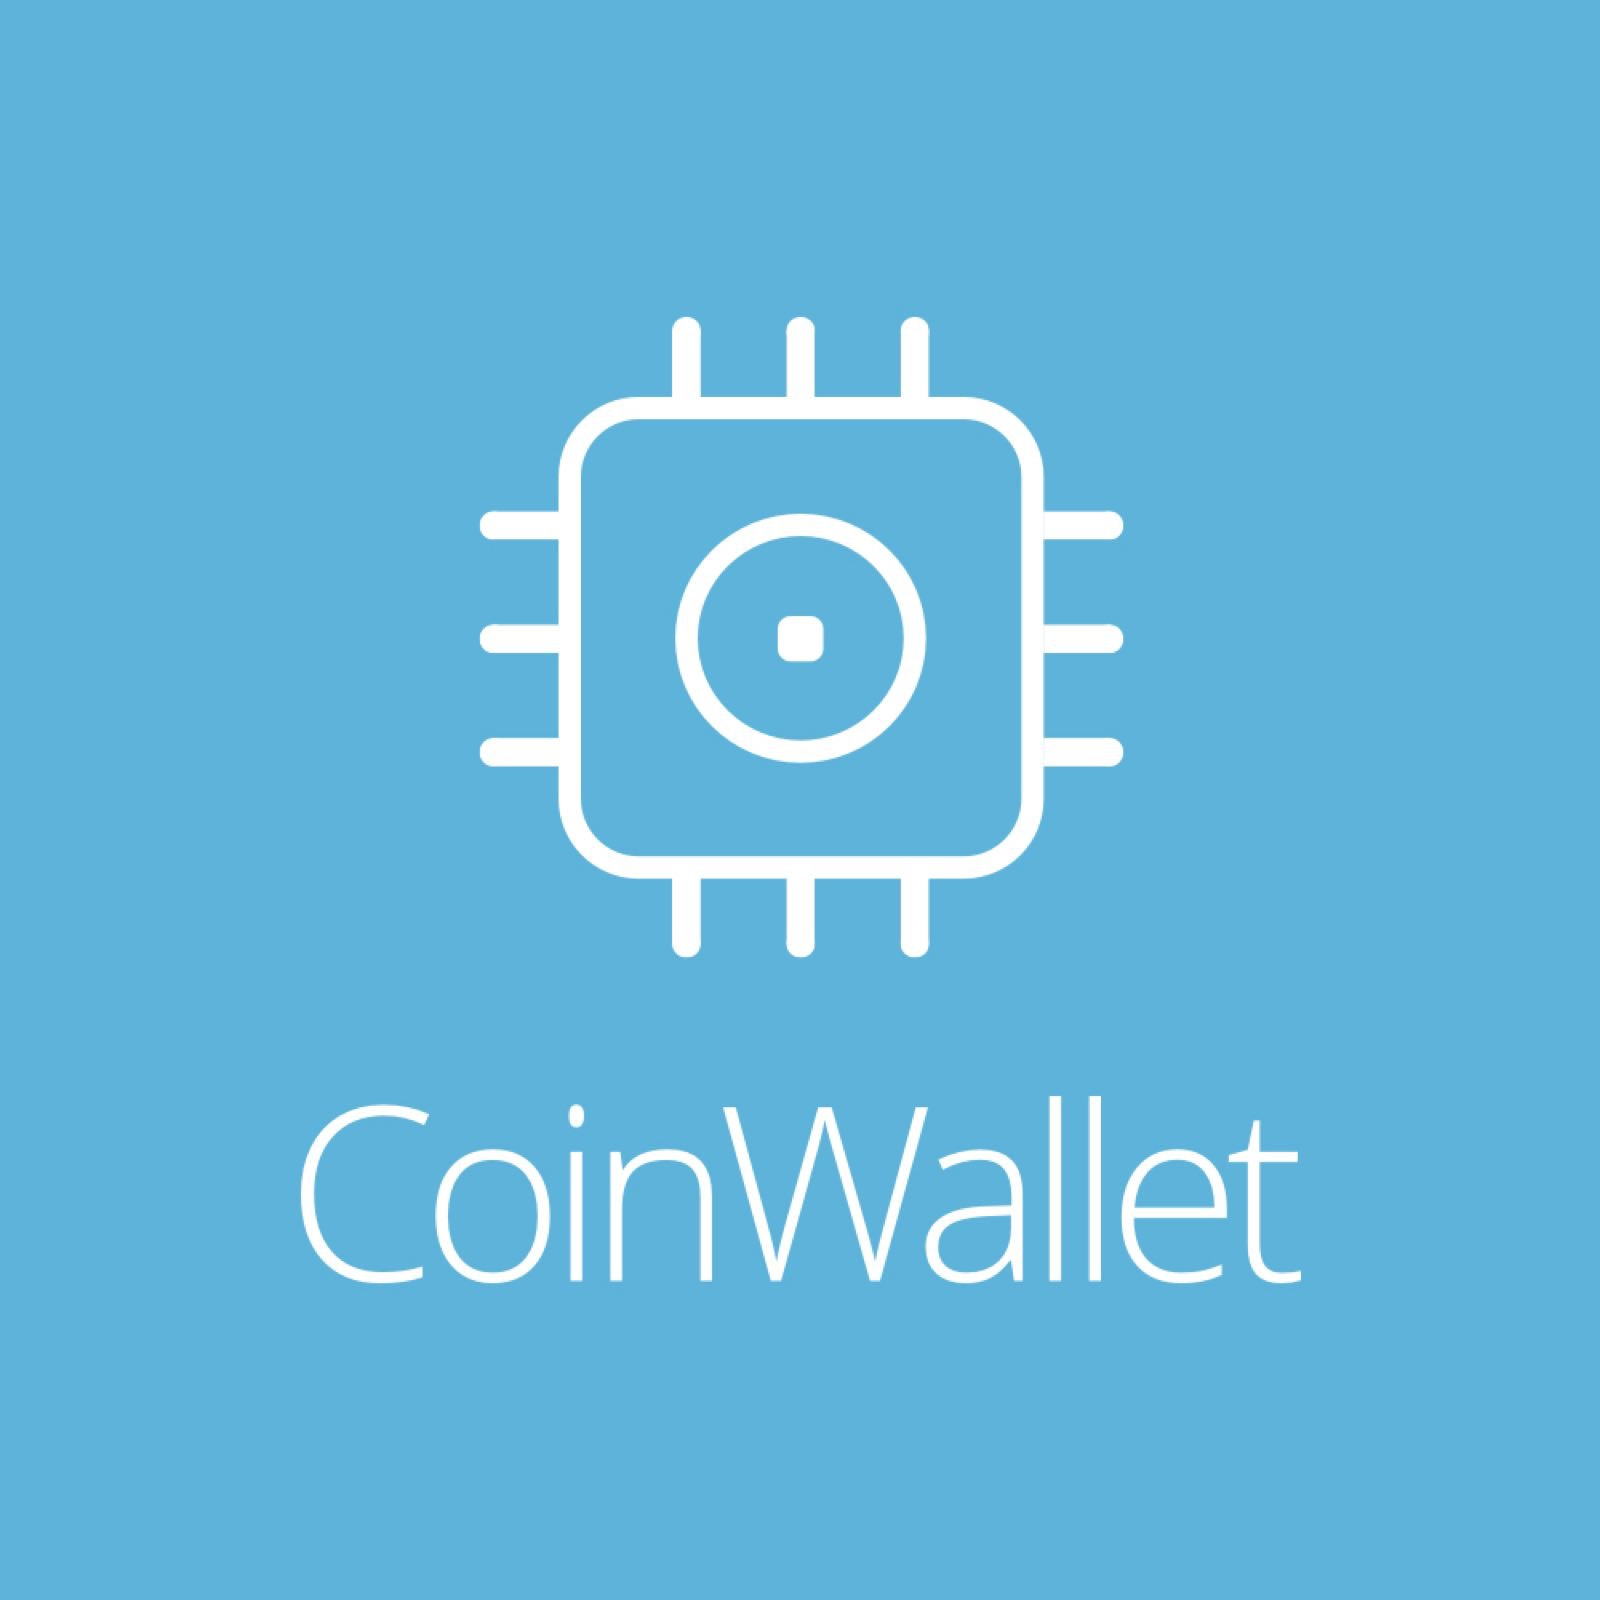 The logo of CoinWallet, the Chinese retailer of CoolWallet S